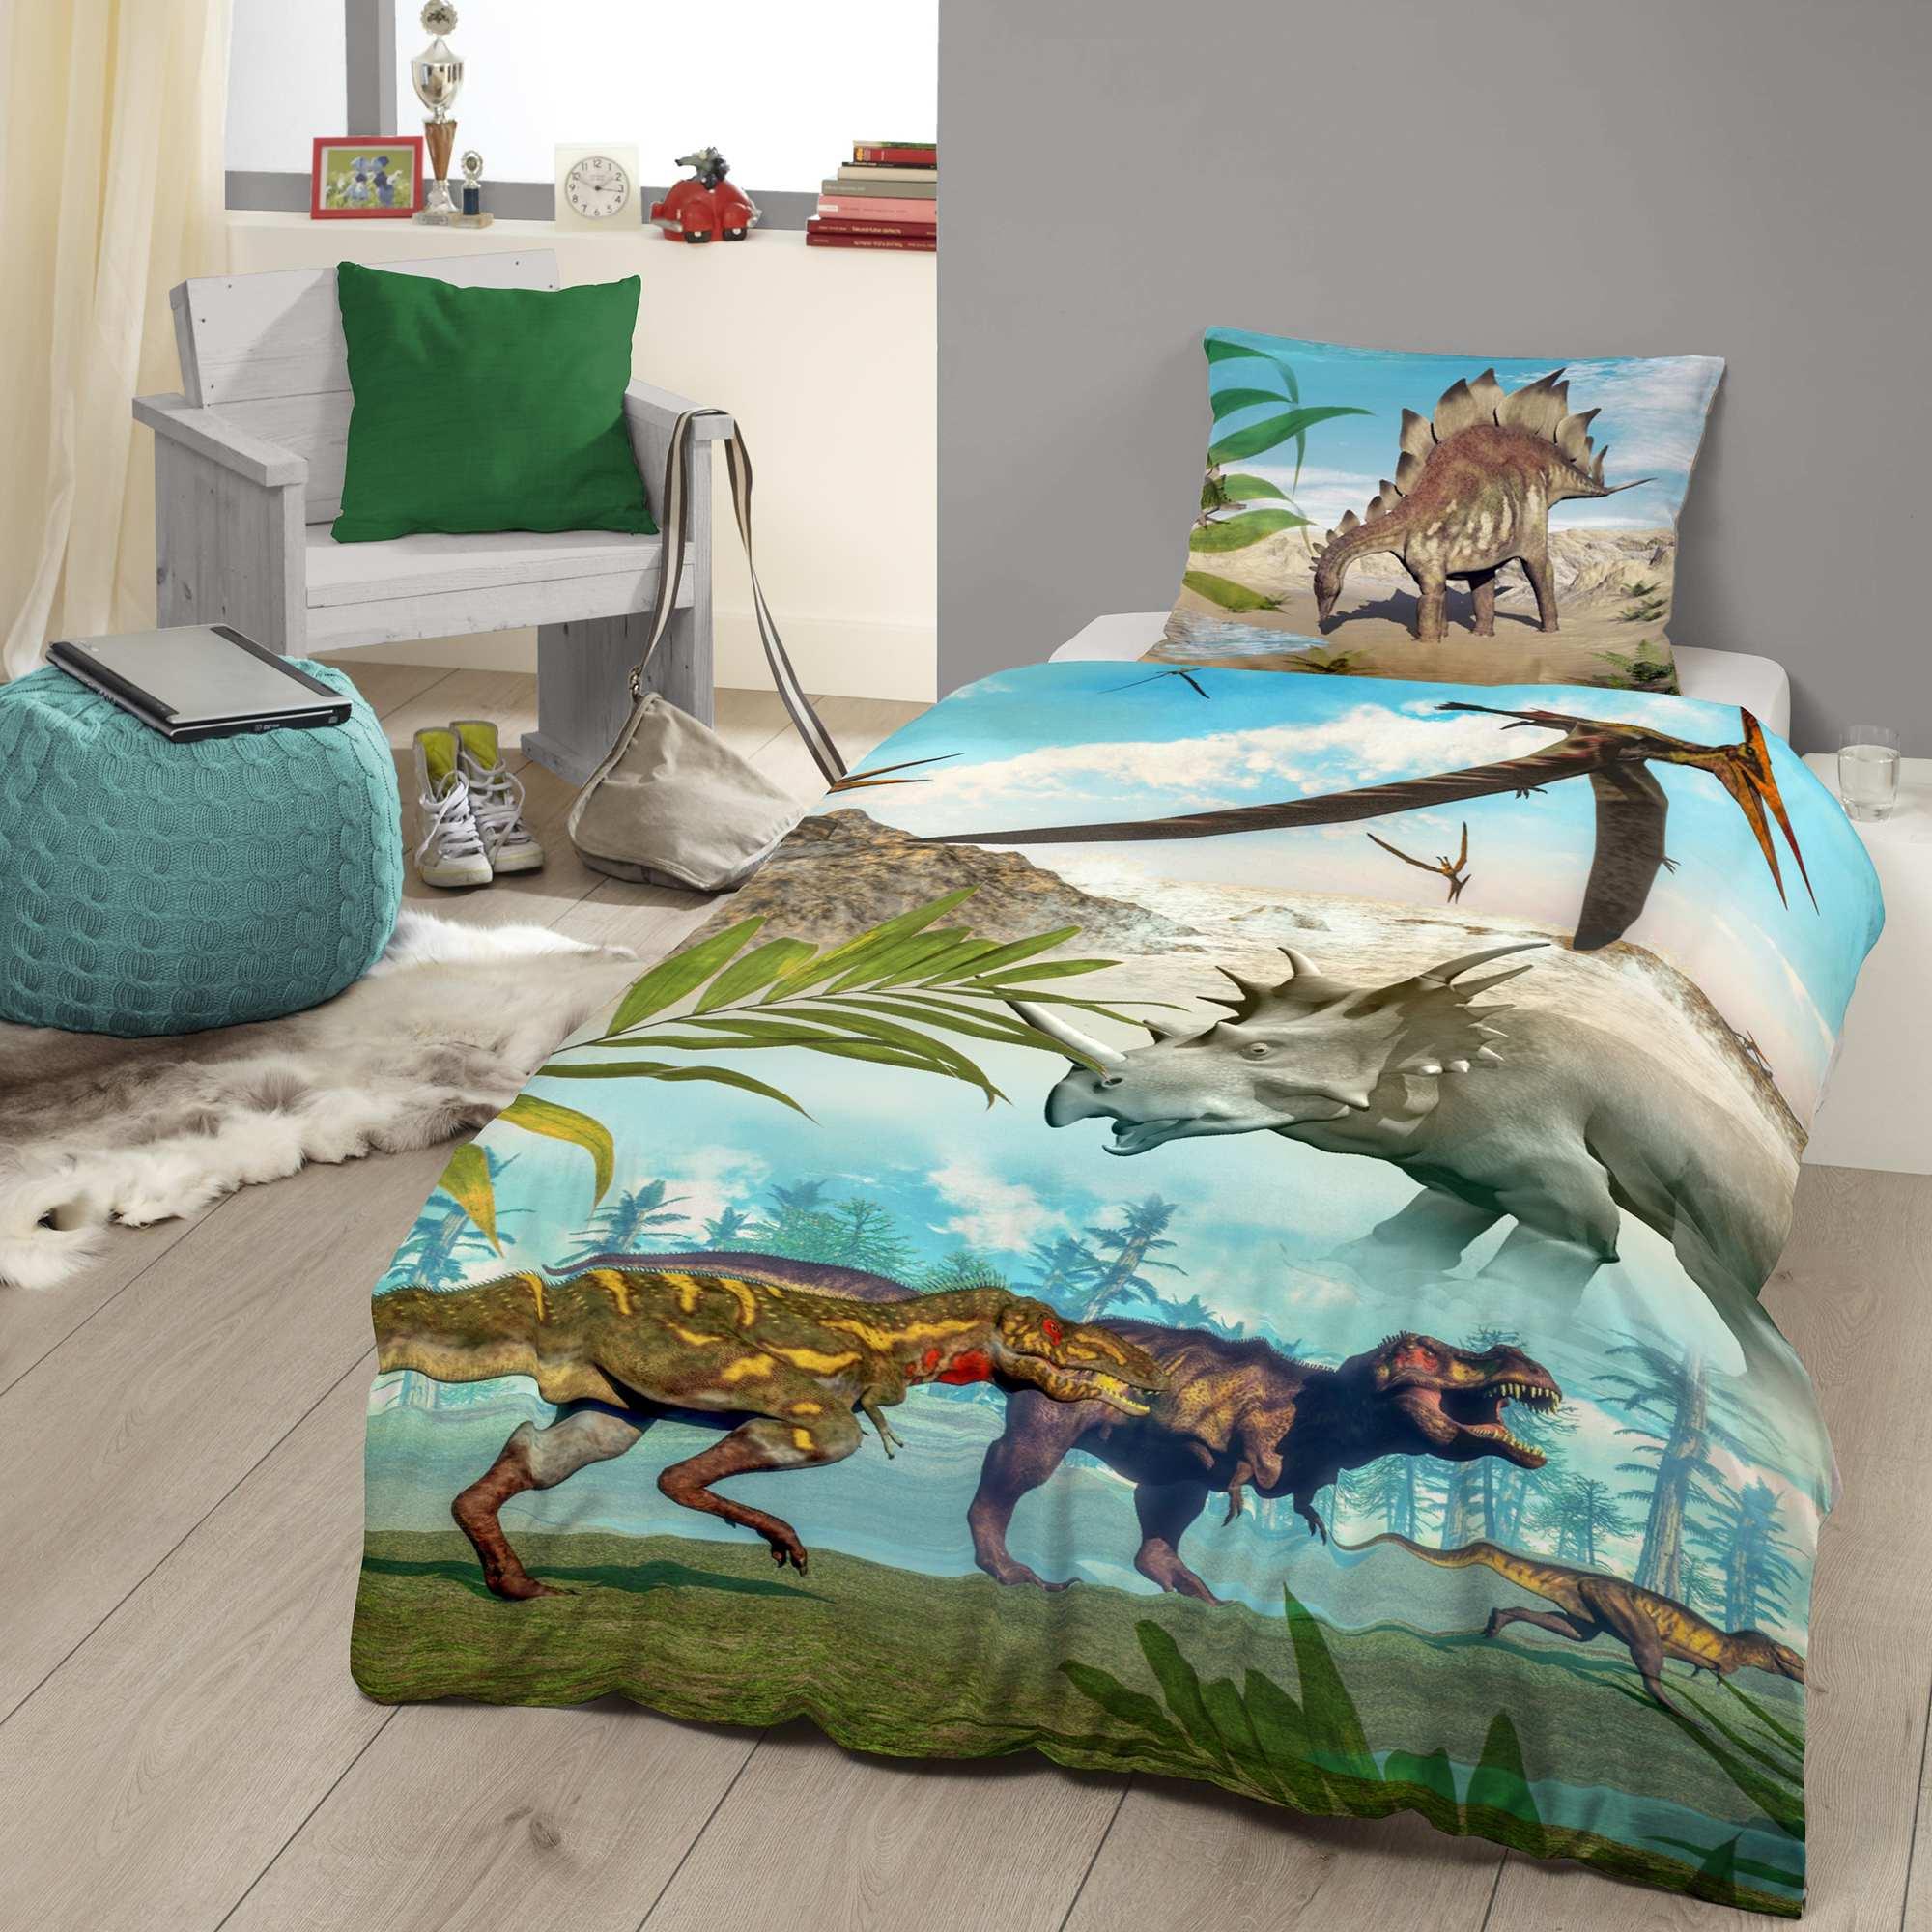 parure de lit imprim e 39 dinosaures 39 linge de lit bleu. Black Bedroom Furniture Sets. Home Design Ideas